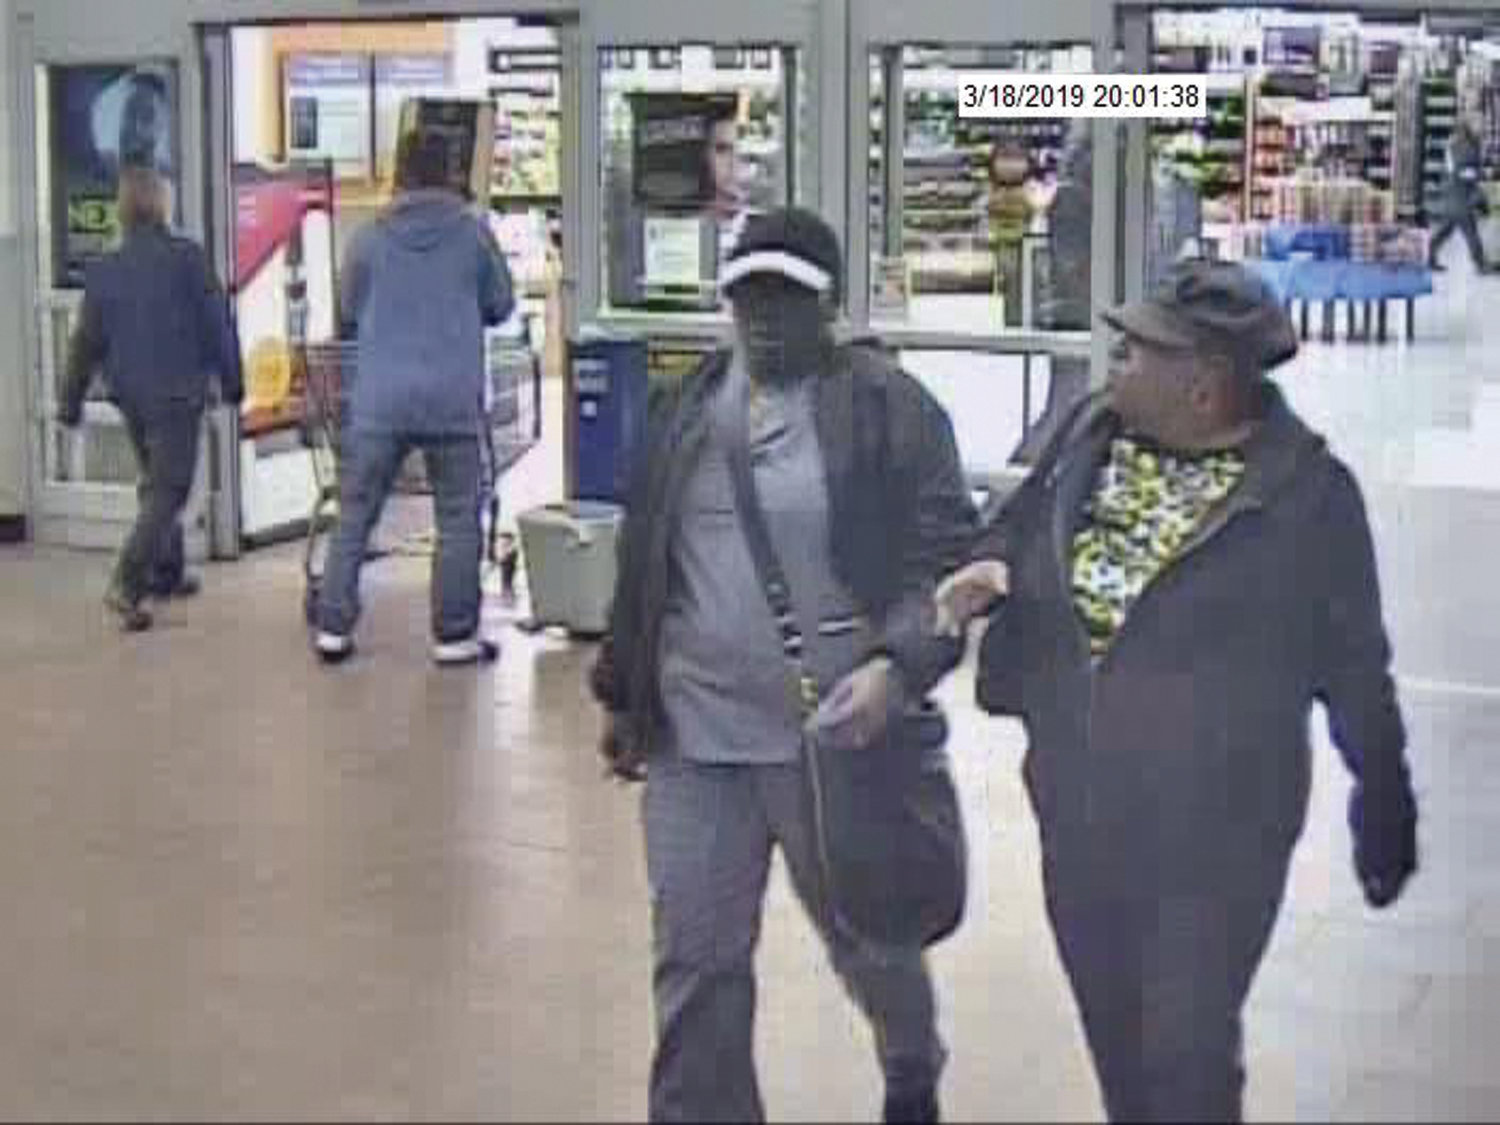 WALMART THEFT: Police are seeking two subjects, seen in this image taken from security footage, in the theft of more than $4,000 from a Walmart cash register on March 18.